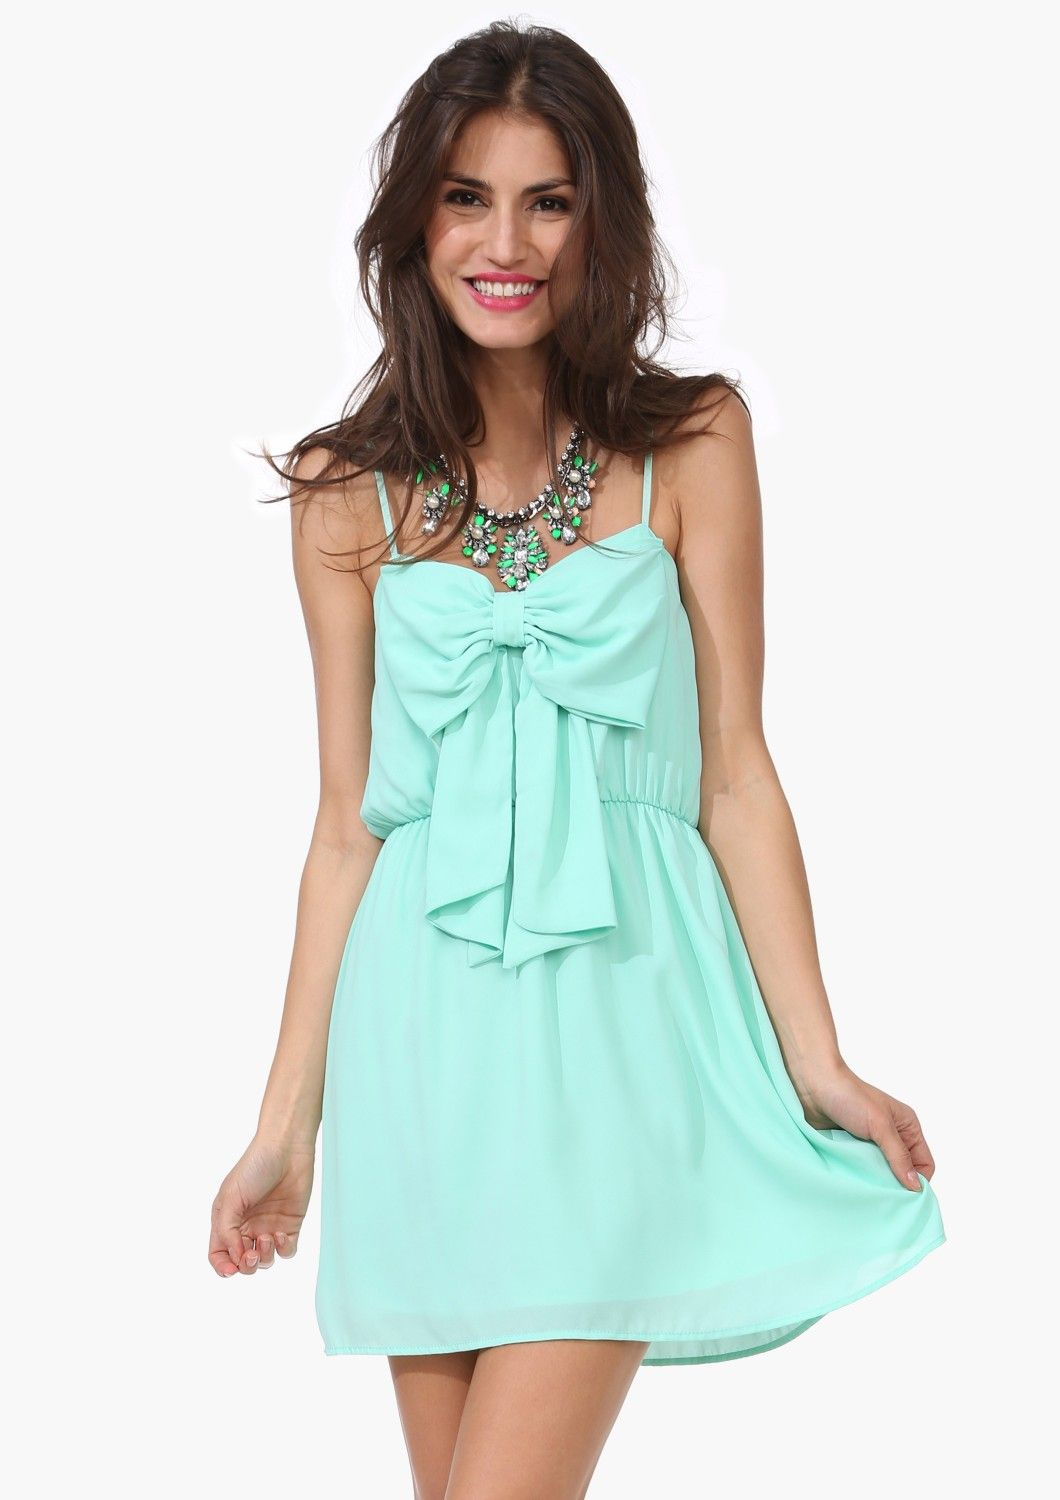 Brunch bow dress uc adorable apparel styles pinterest